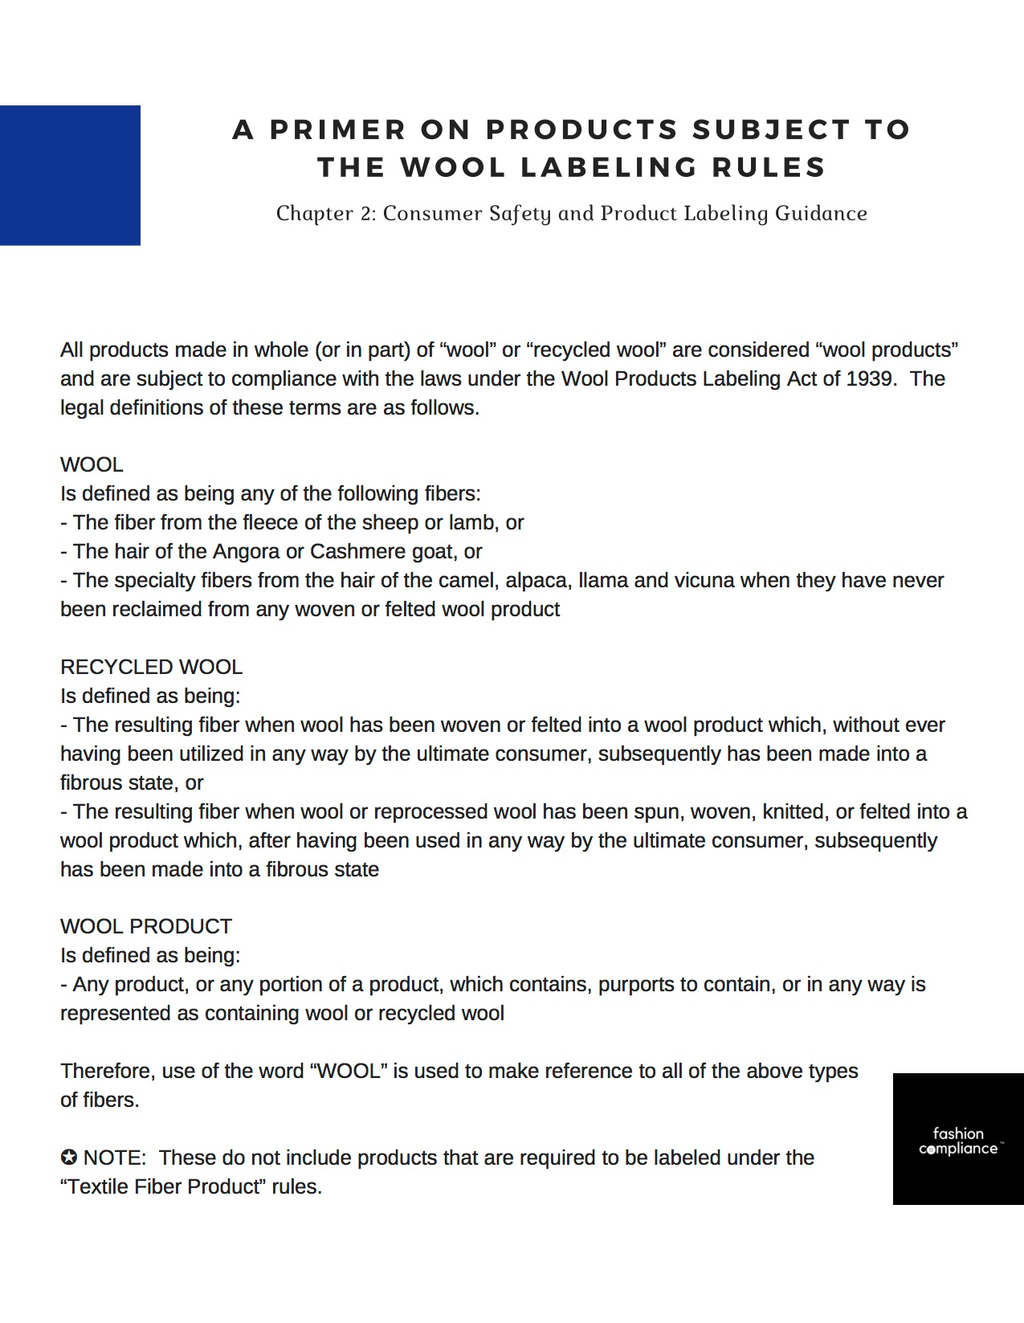 A Primer on Wool Products Subject to the Wool Labeling Rules